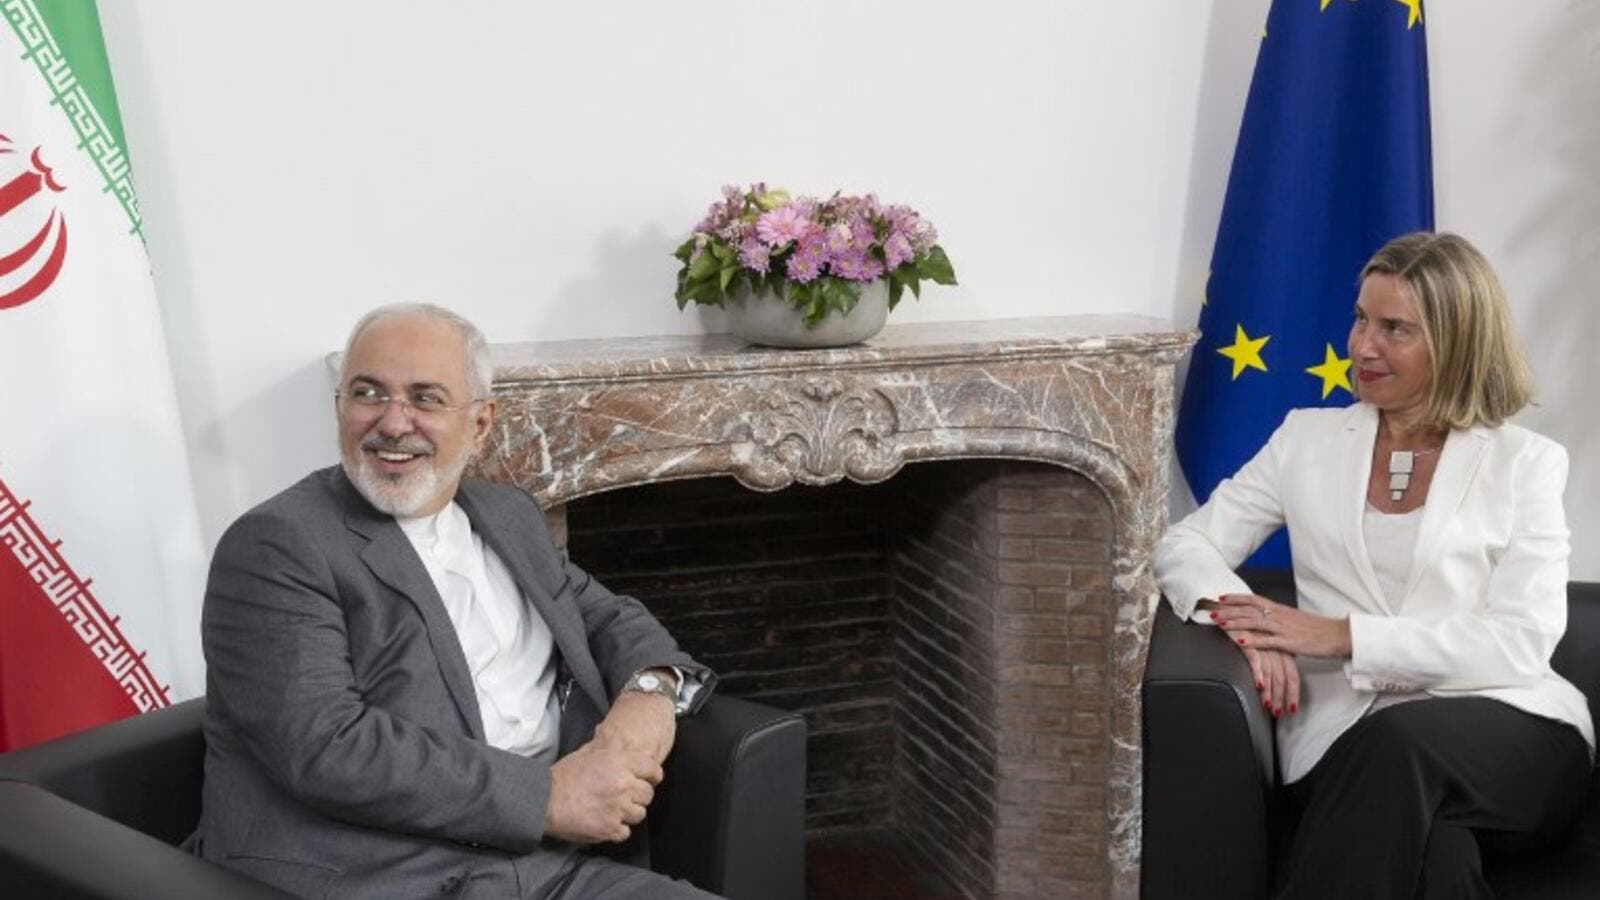 Iranian Foreign Minister Mohammad Javad Zarif (L) meets with European Union Foreign Policy Chief Federica Mogherini, to discuss Iran's nuclear deal/AFP